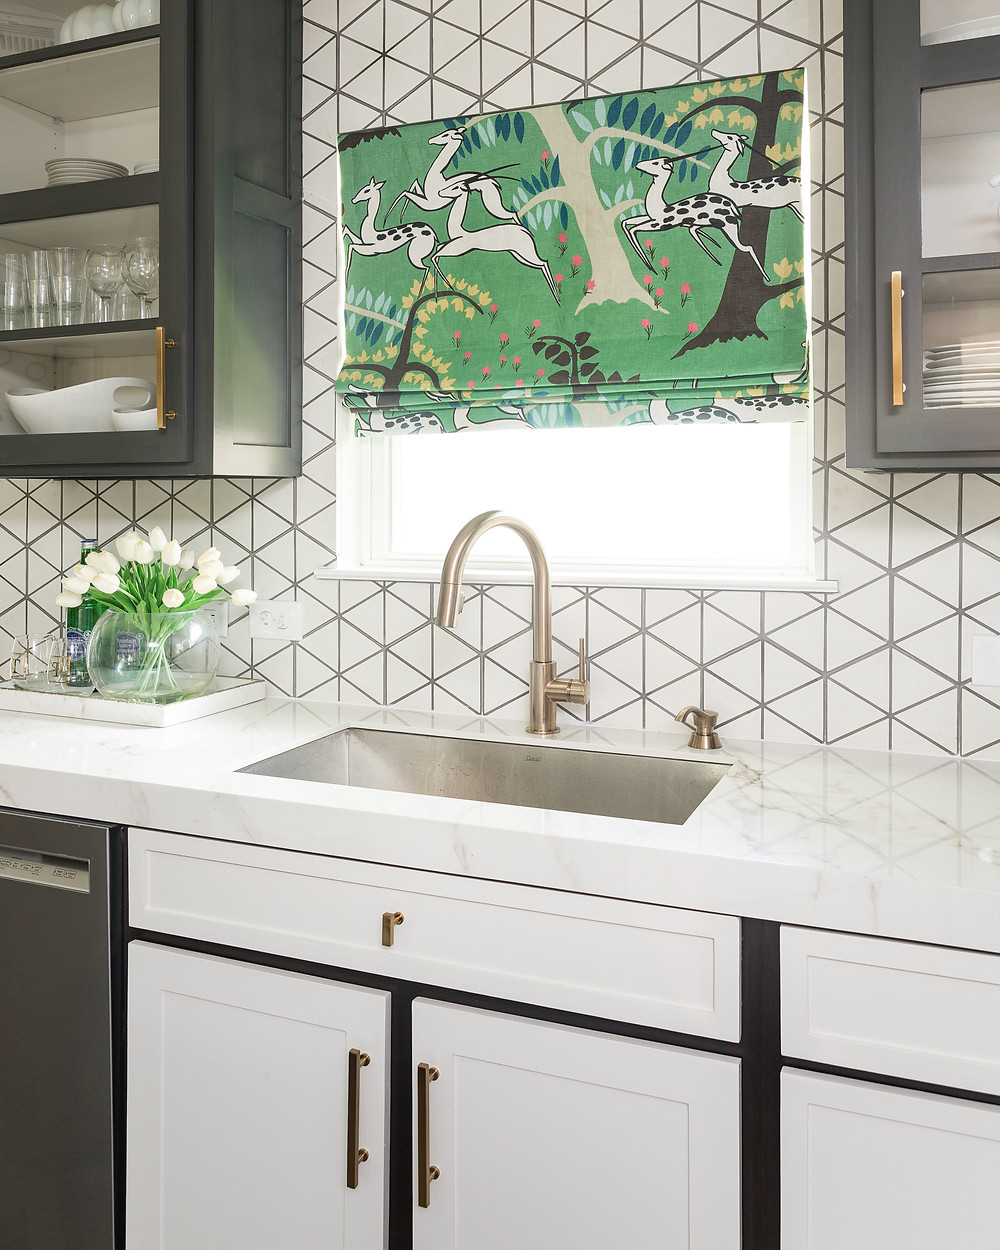 Deep stainless steel sink with porcelain countertop